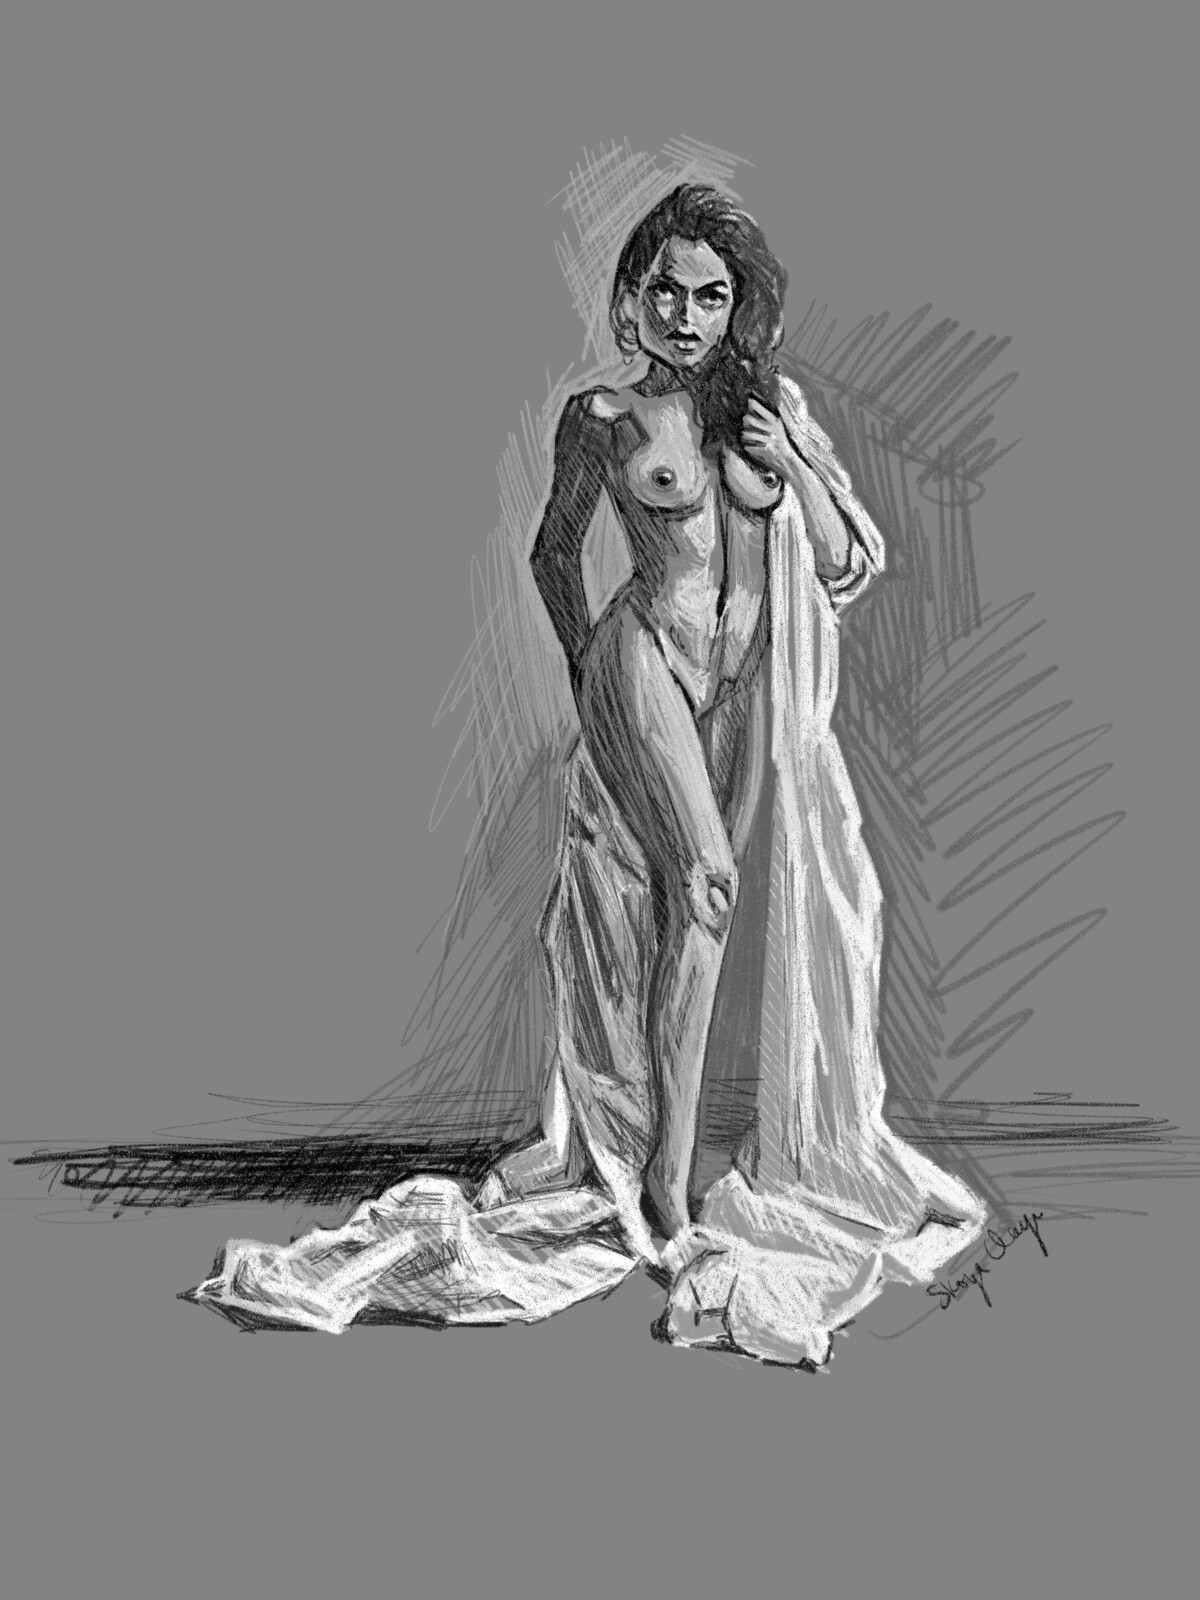 Woman in Fabric Study with TIMELAPSE video